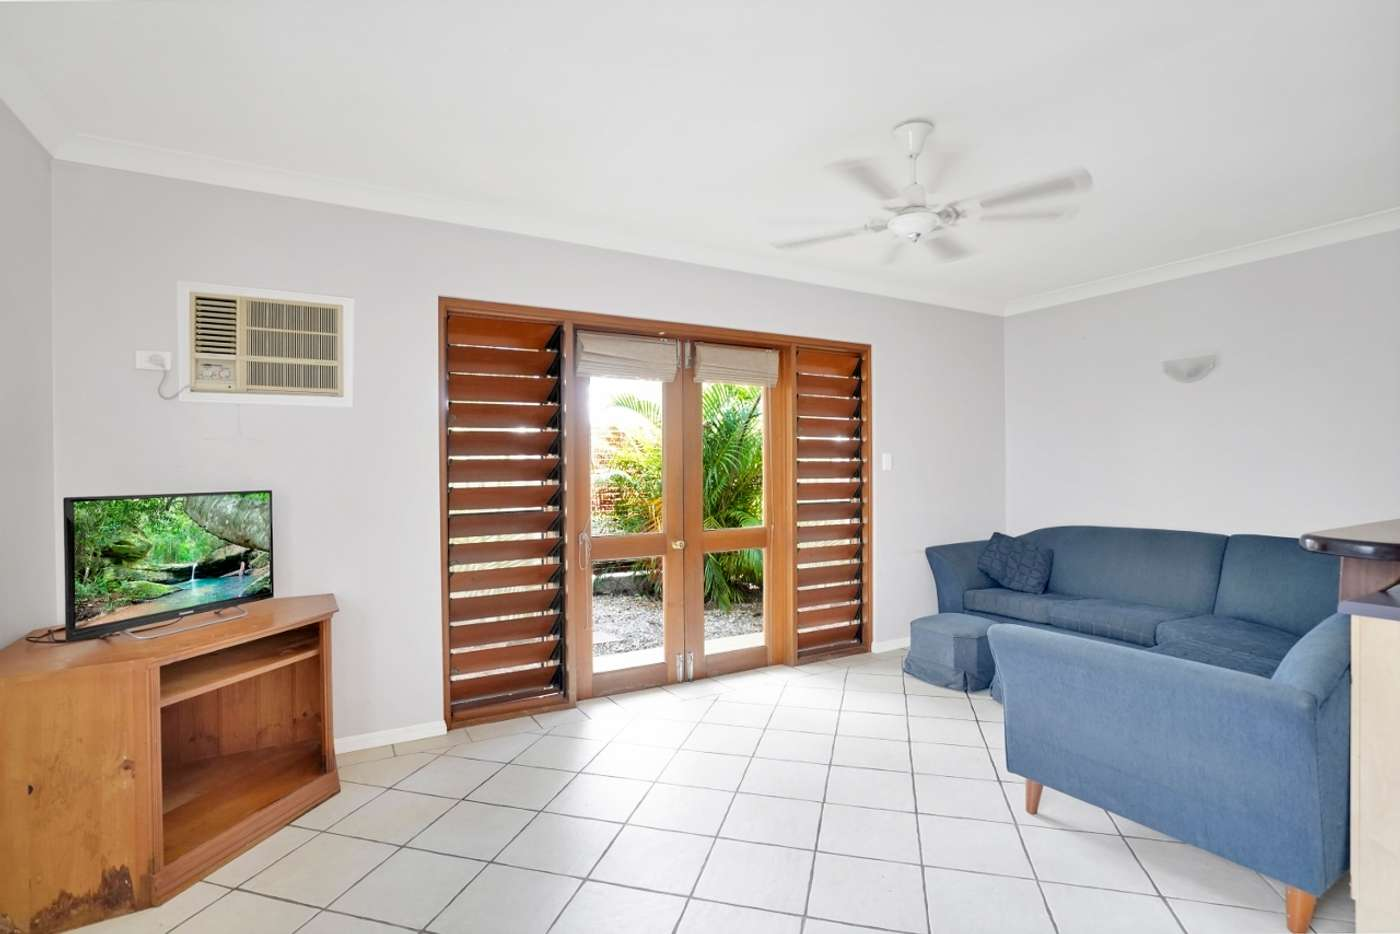 Main view of Homely unit listing, 12/26-28 Oliva Street, Palm Cove QLD 4879